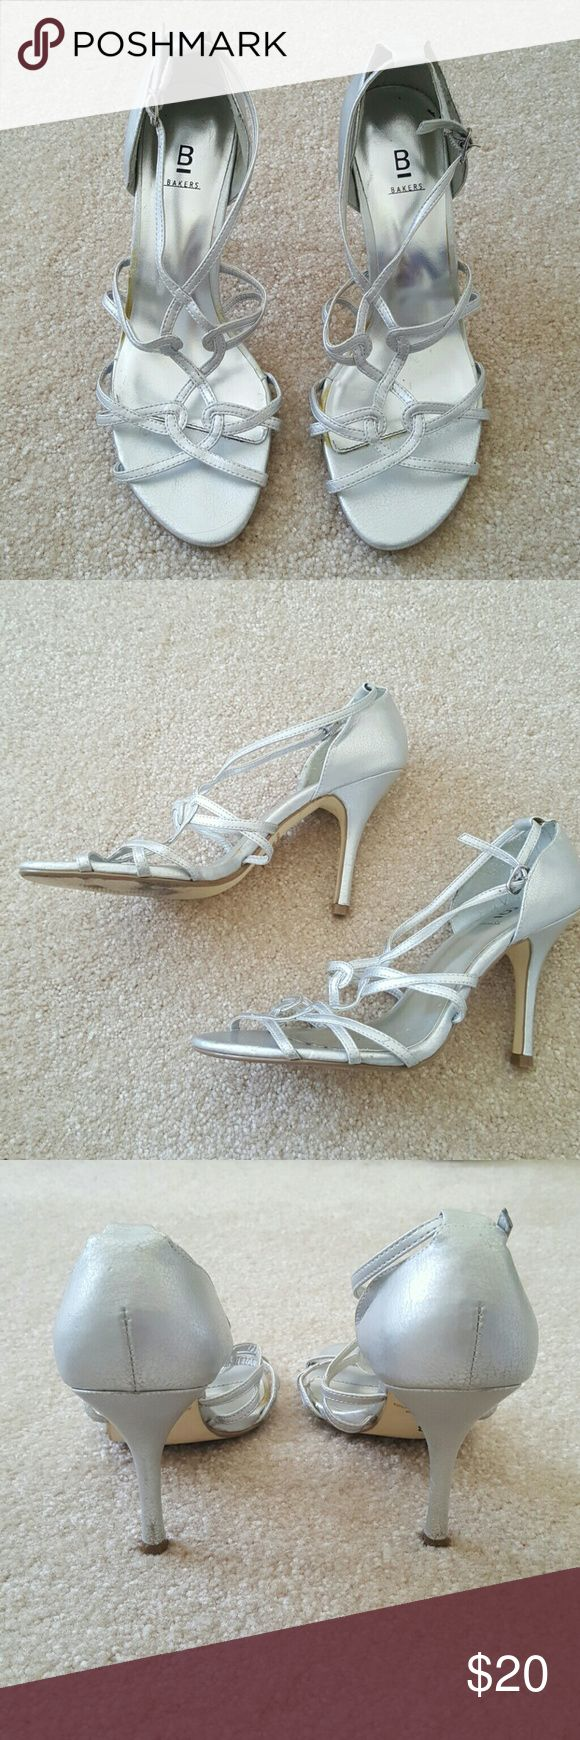 Bakers silver strappy sandal 🌀In great condition. Size 6.5 with 3.5 inch heel Bakers Shoes Sandals